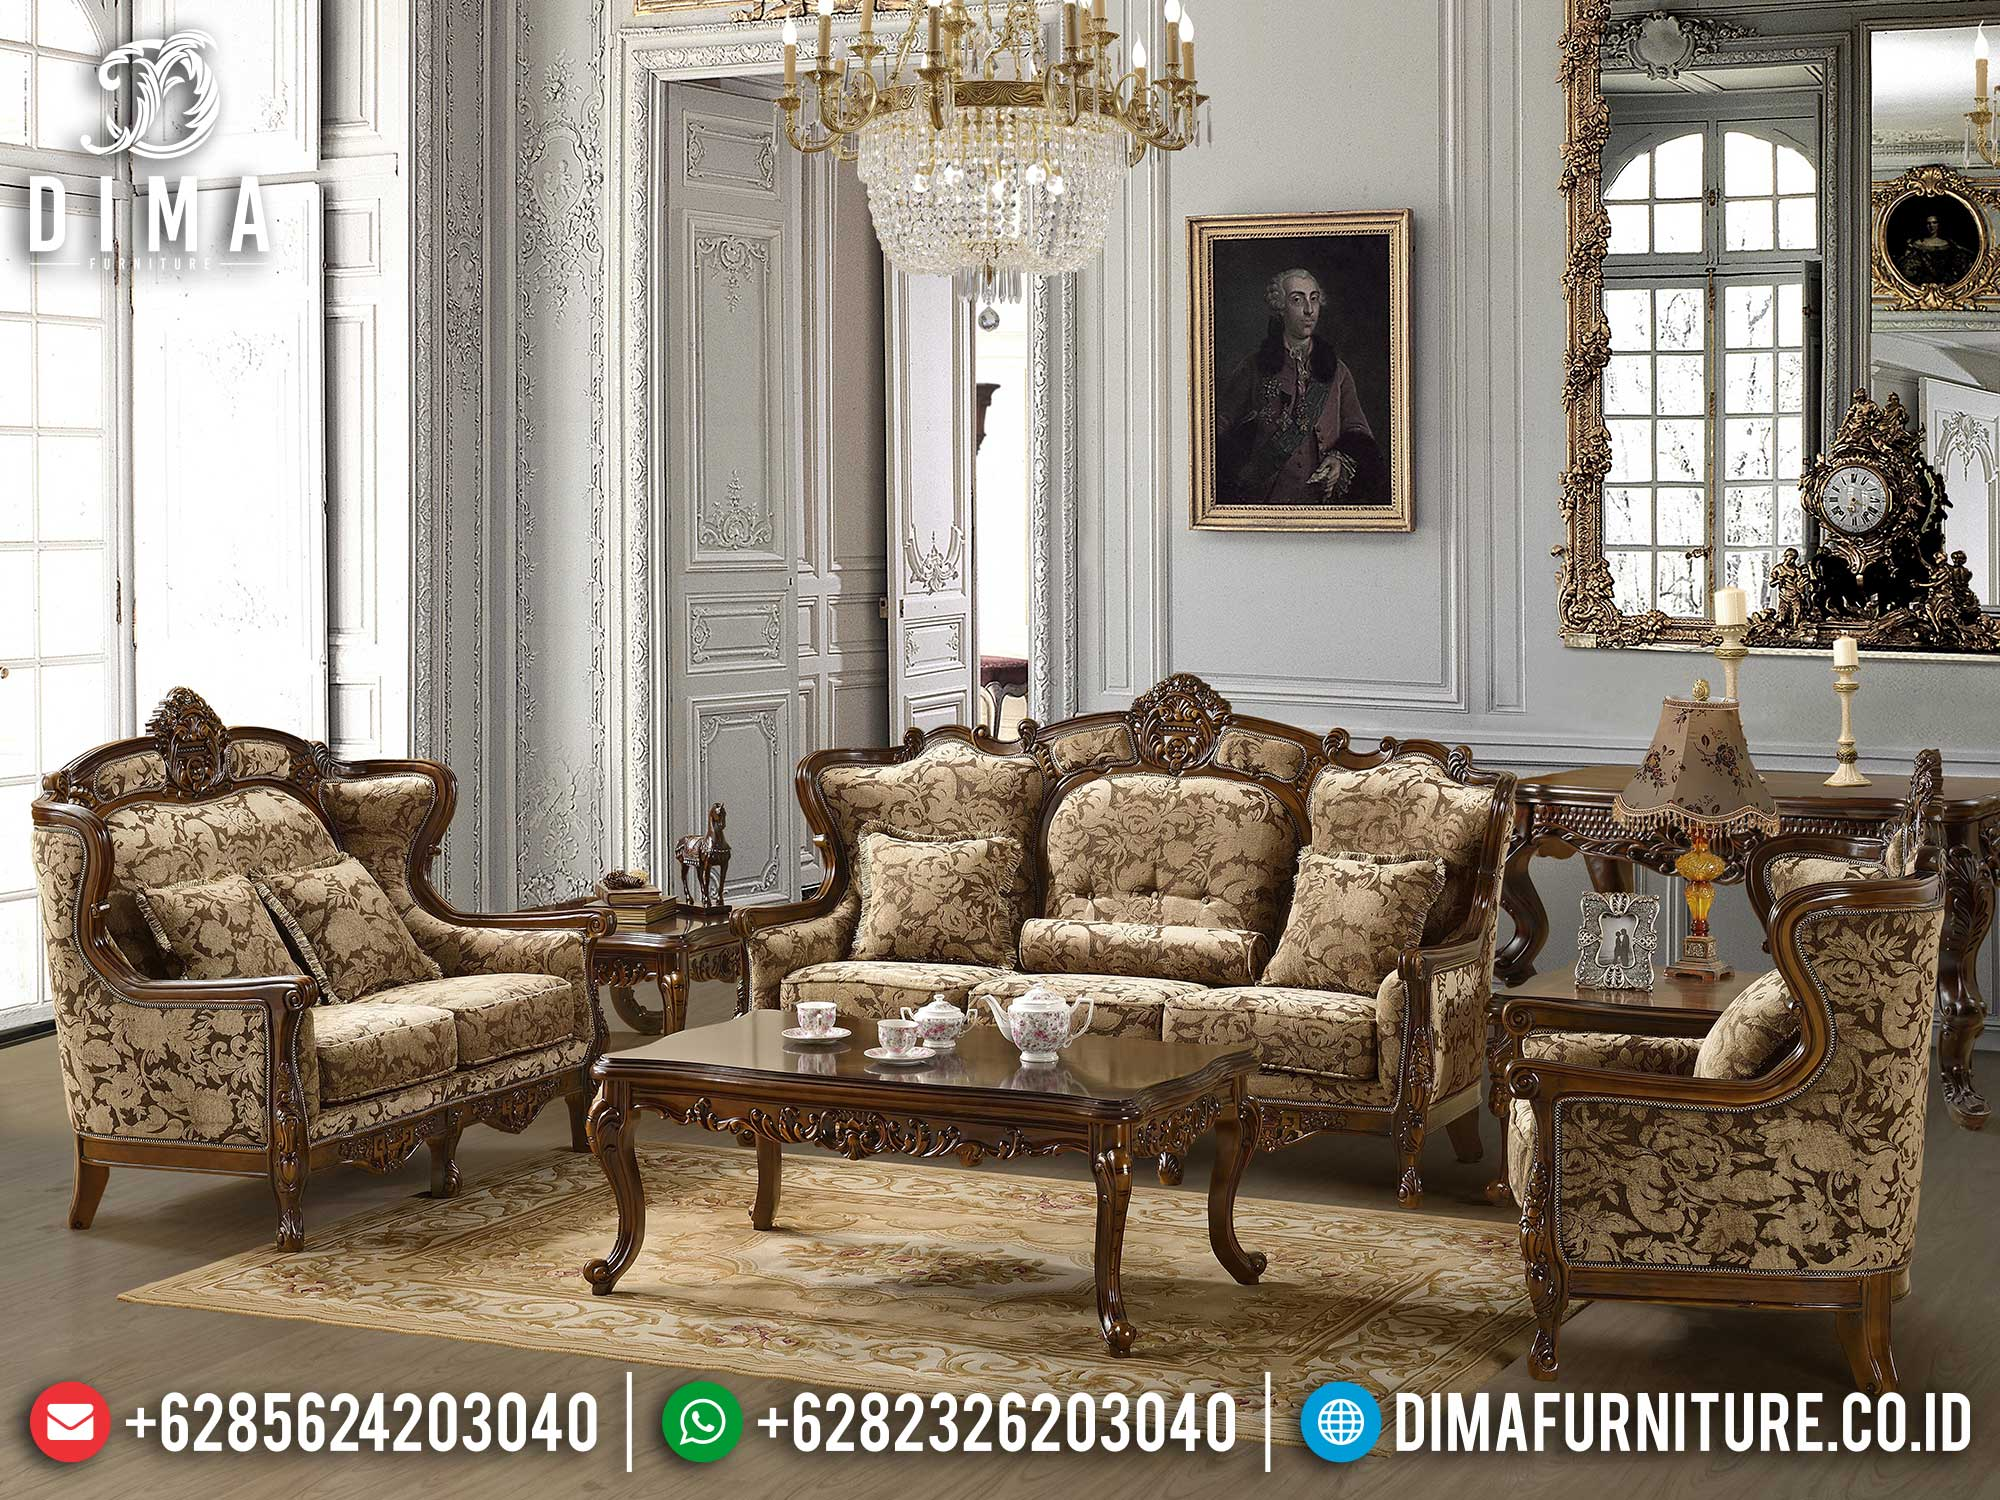 Sofa Tamu Mewah Classic Luxury Design High Quality Royal Foam ST-1275